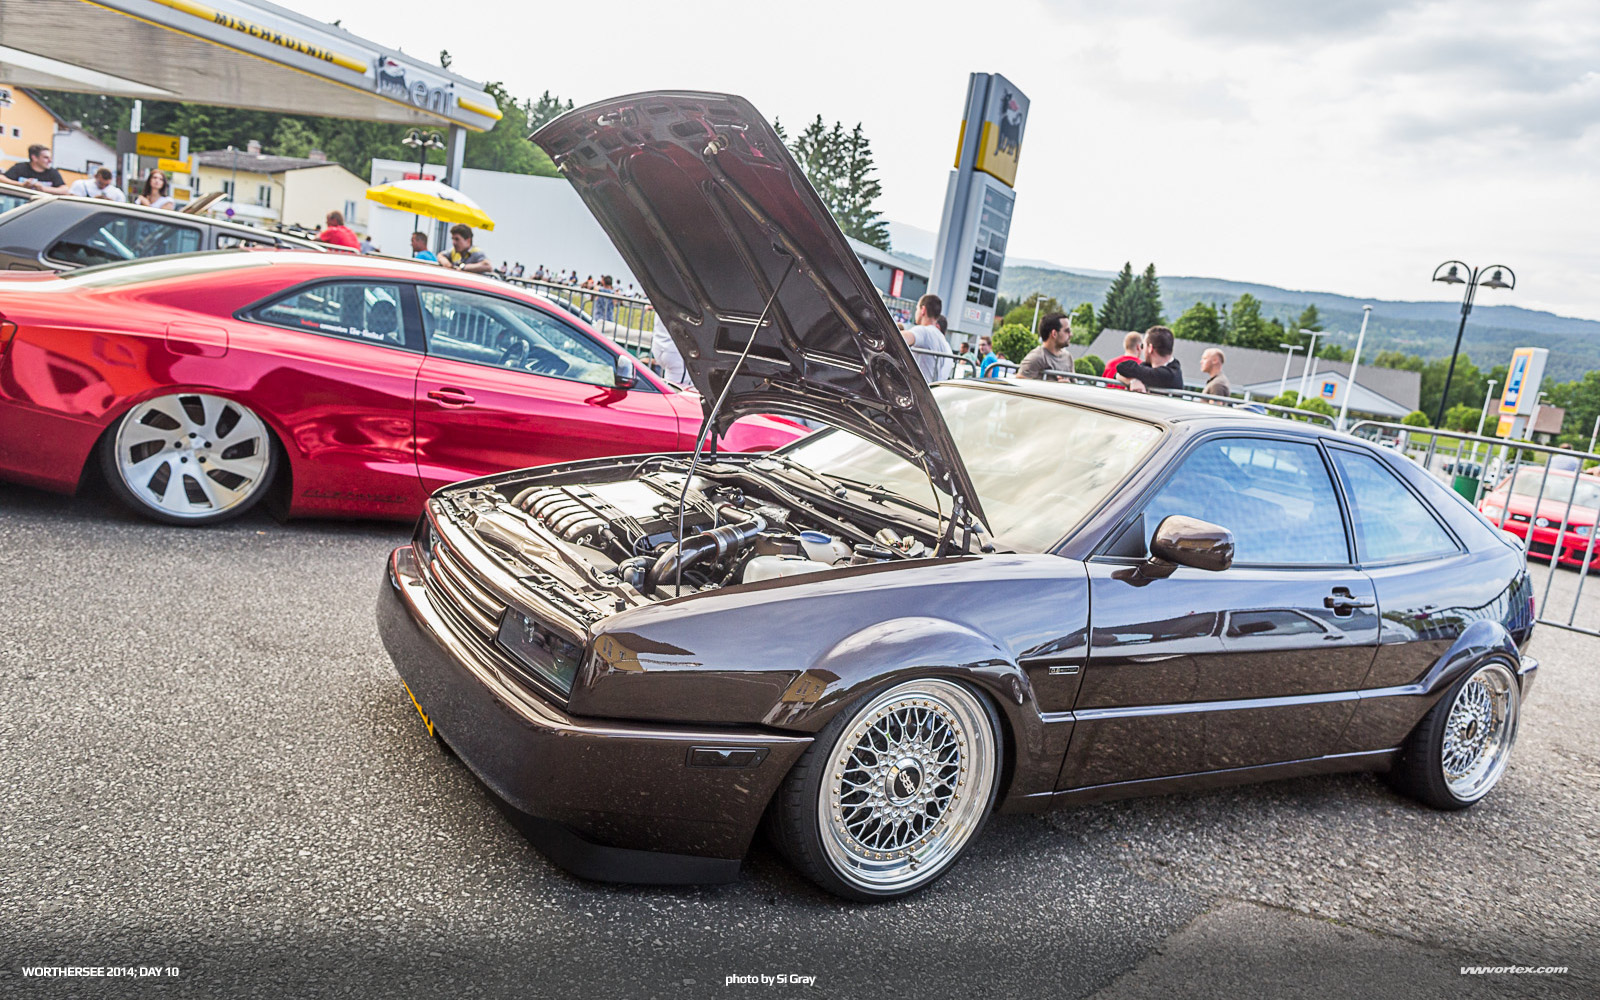 2014-Worthersee-Day-10-Si-Gray-381